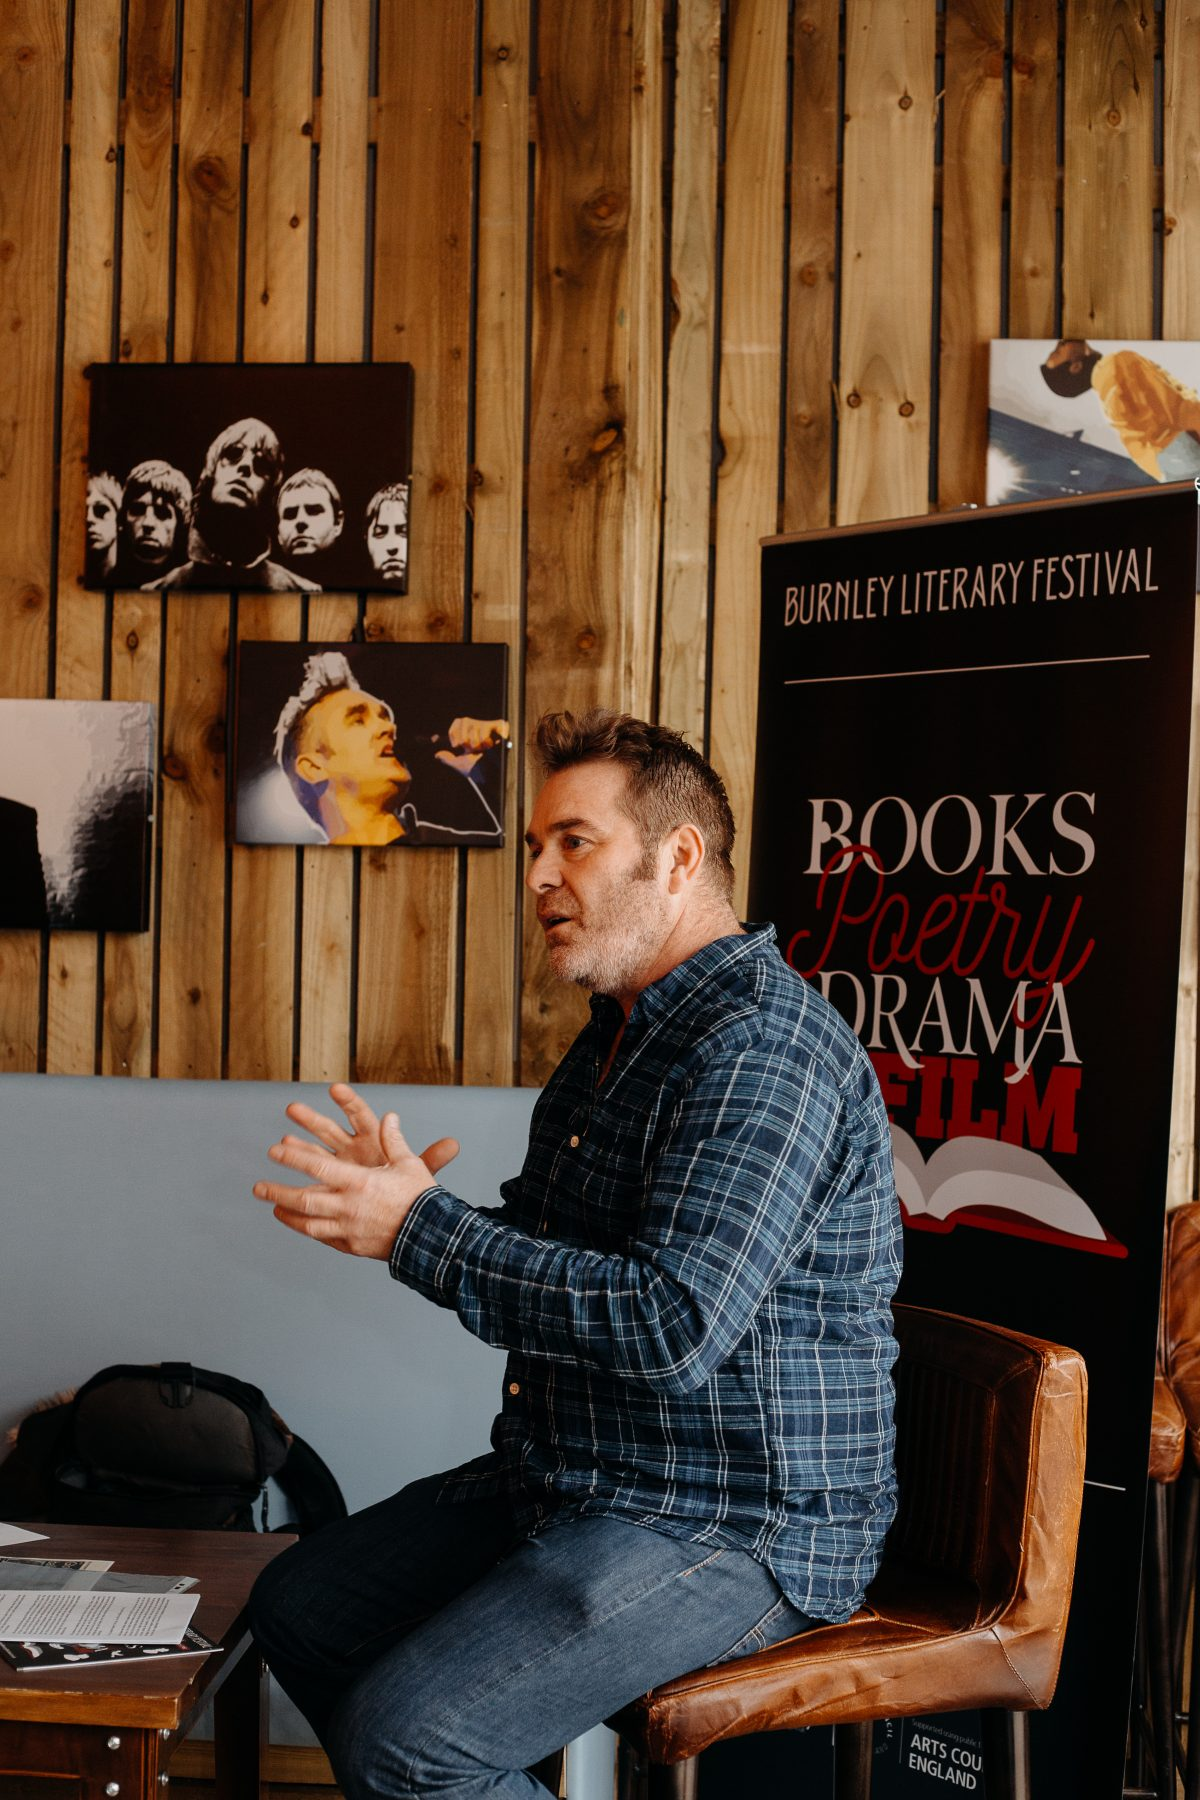 Man talking about books in front of literary festival banner